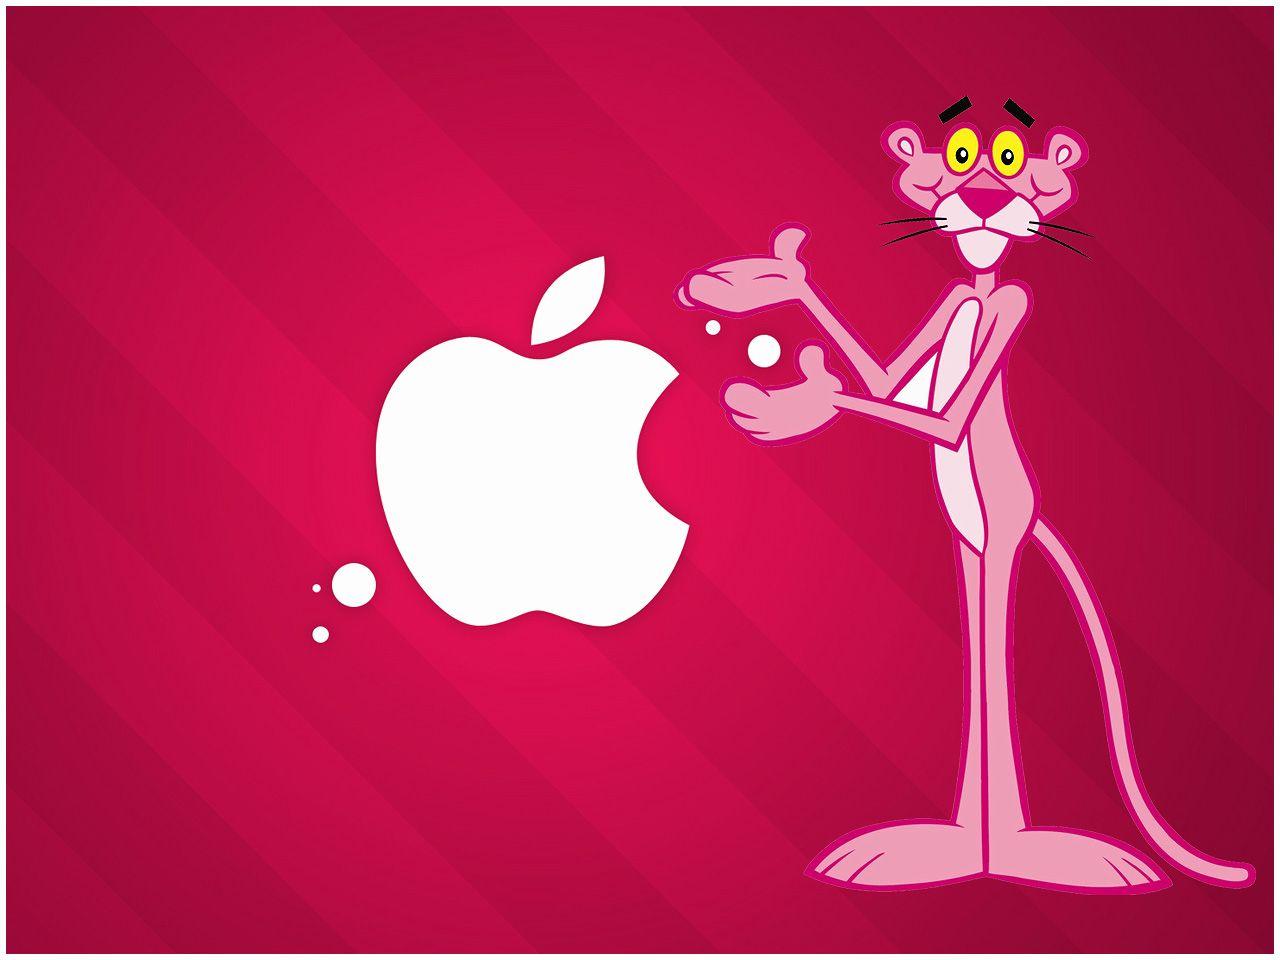 Pink Panther HD Images Get Free Top Quality For Your Desktop